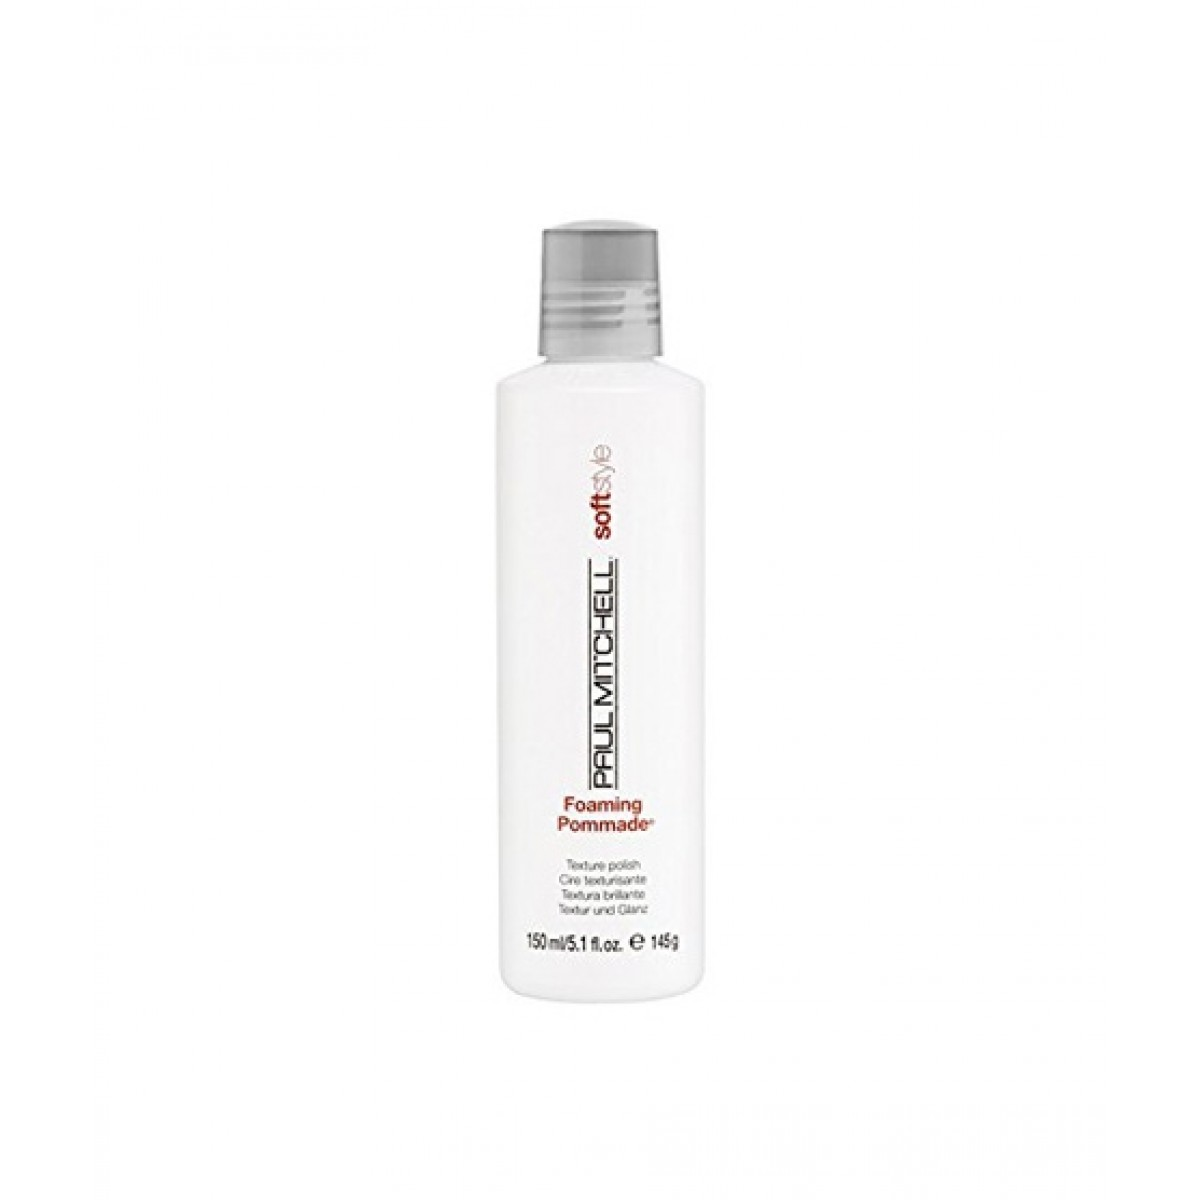 Paul Mitchell Foaming Pommade 150ml